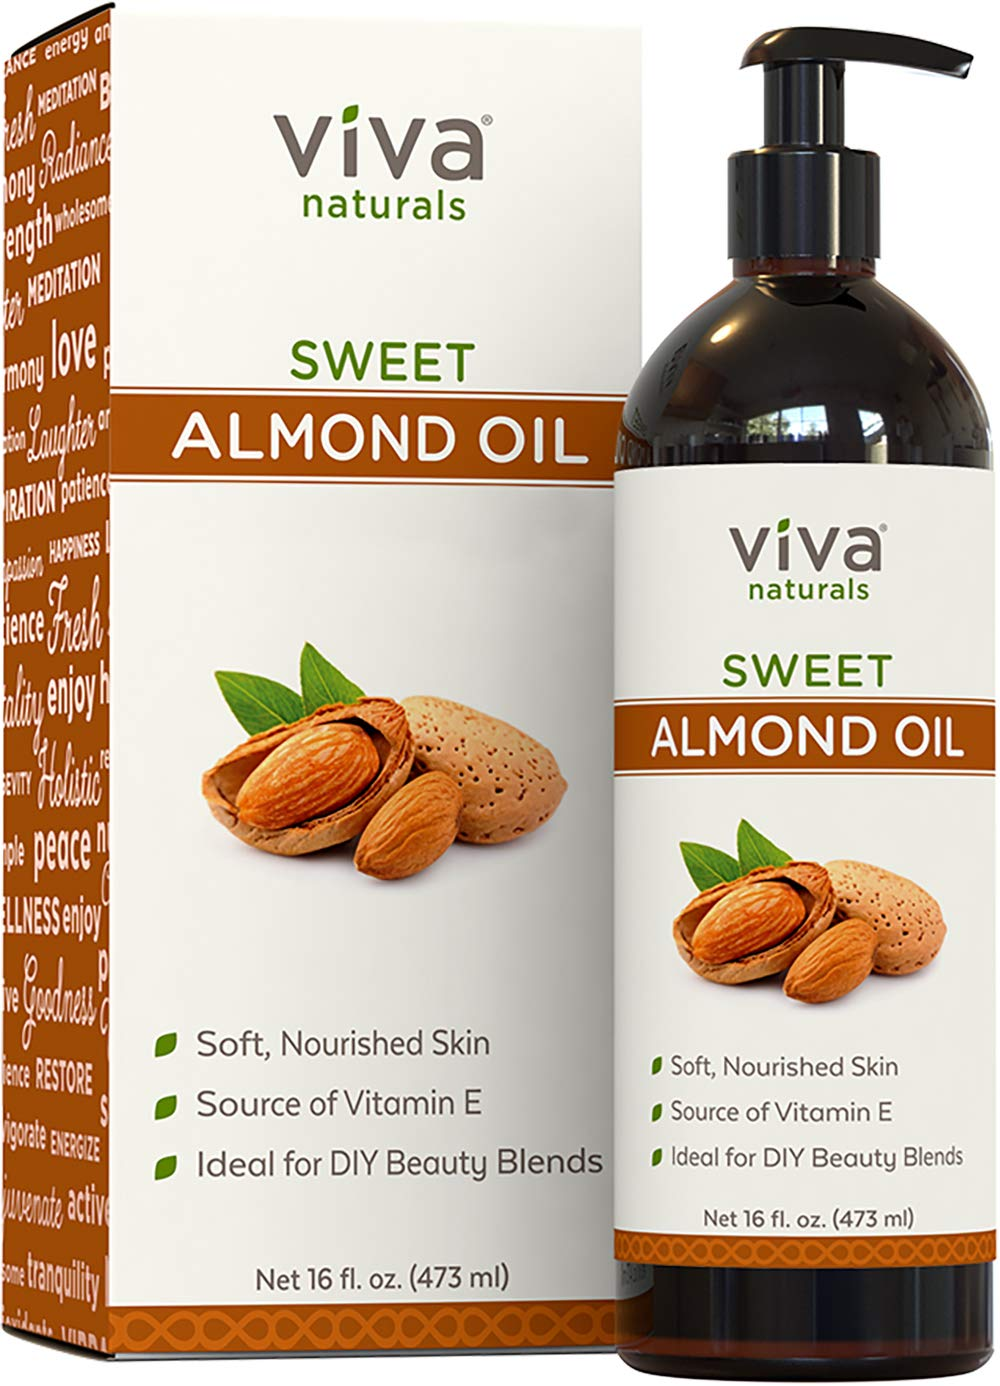 Viva Naturals Sweet Almond Oil 100 Pure and Hexane Free Ideal for Skin and Hair DIYs 16 fl oz